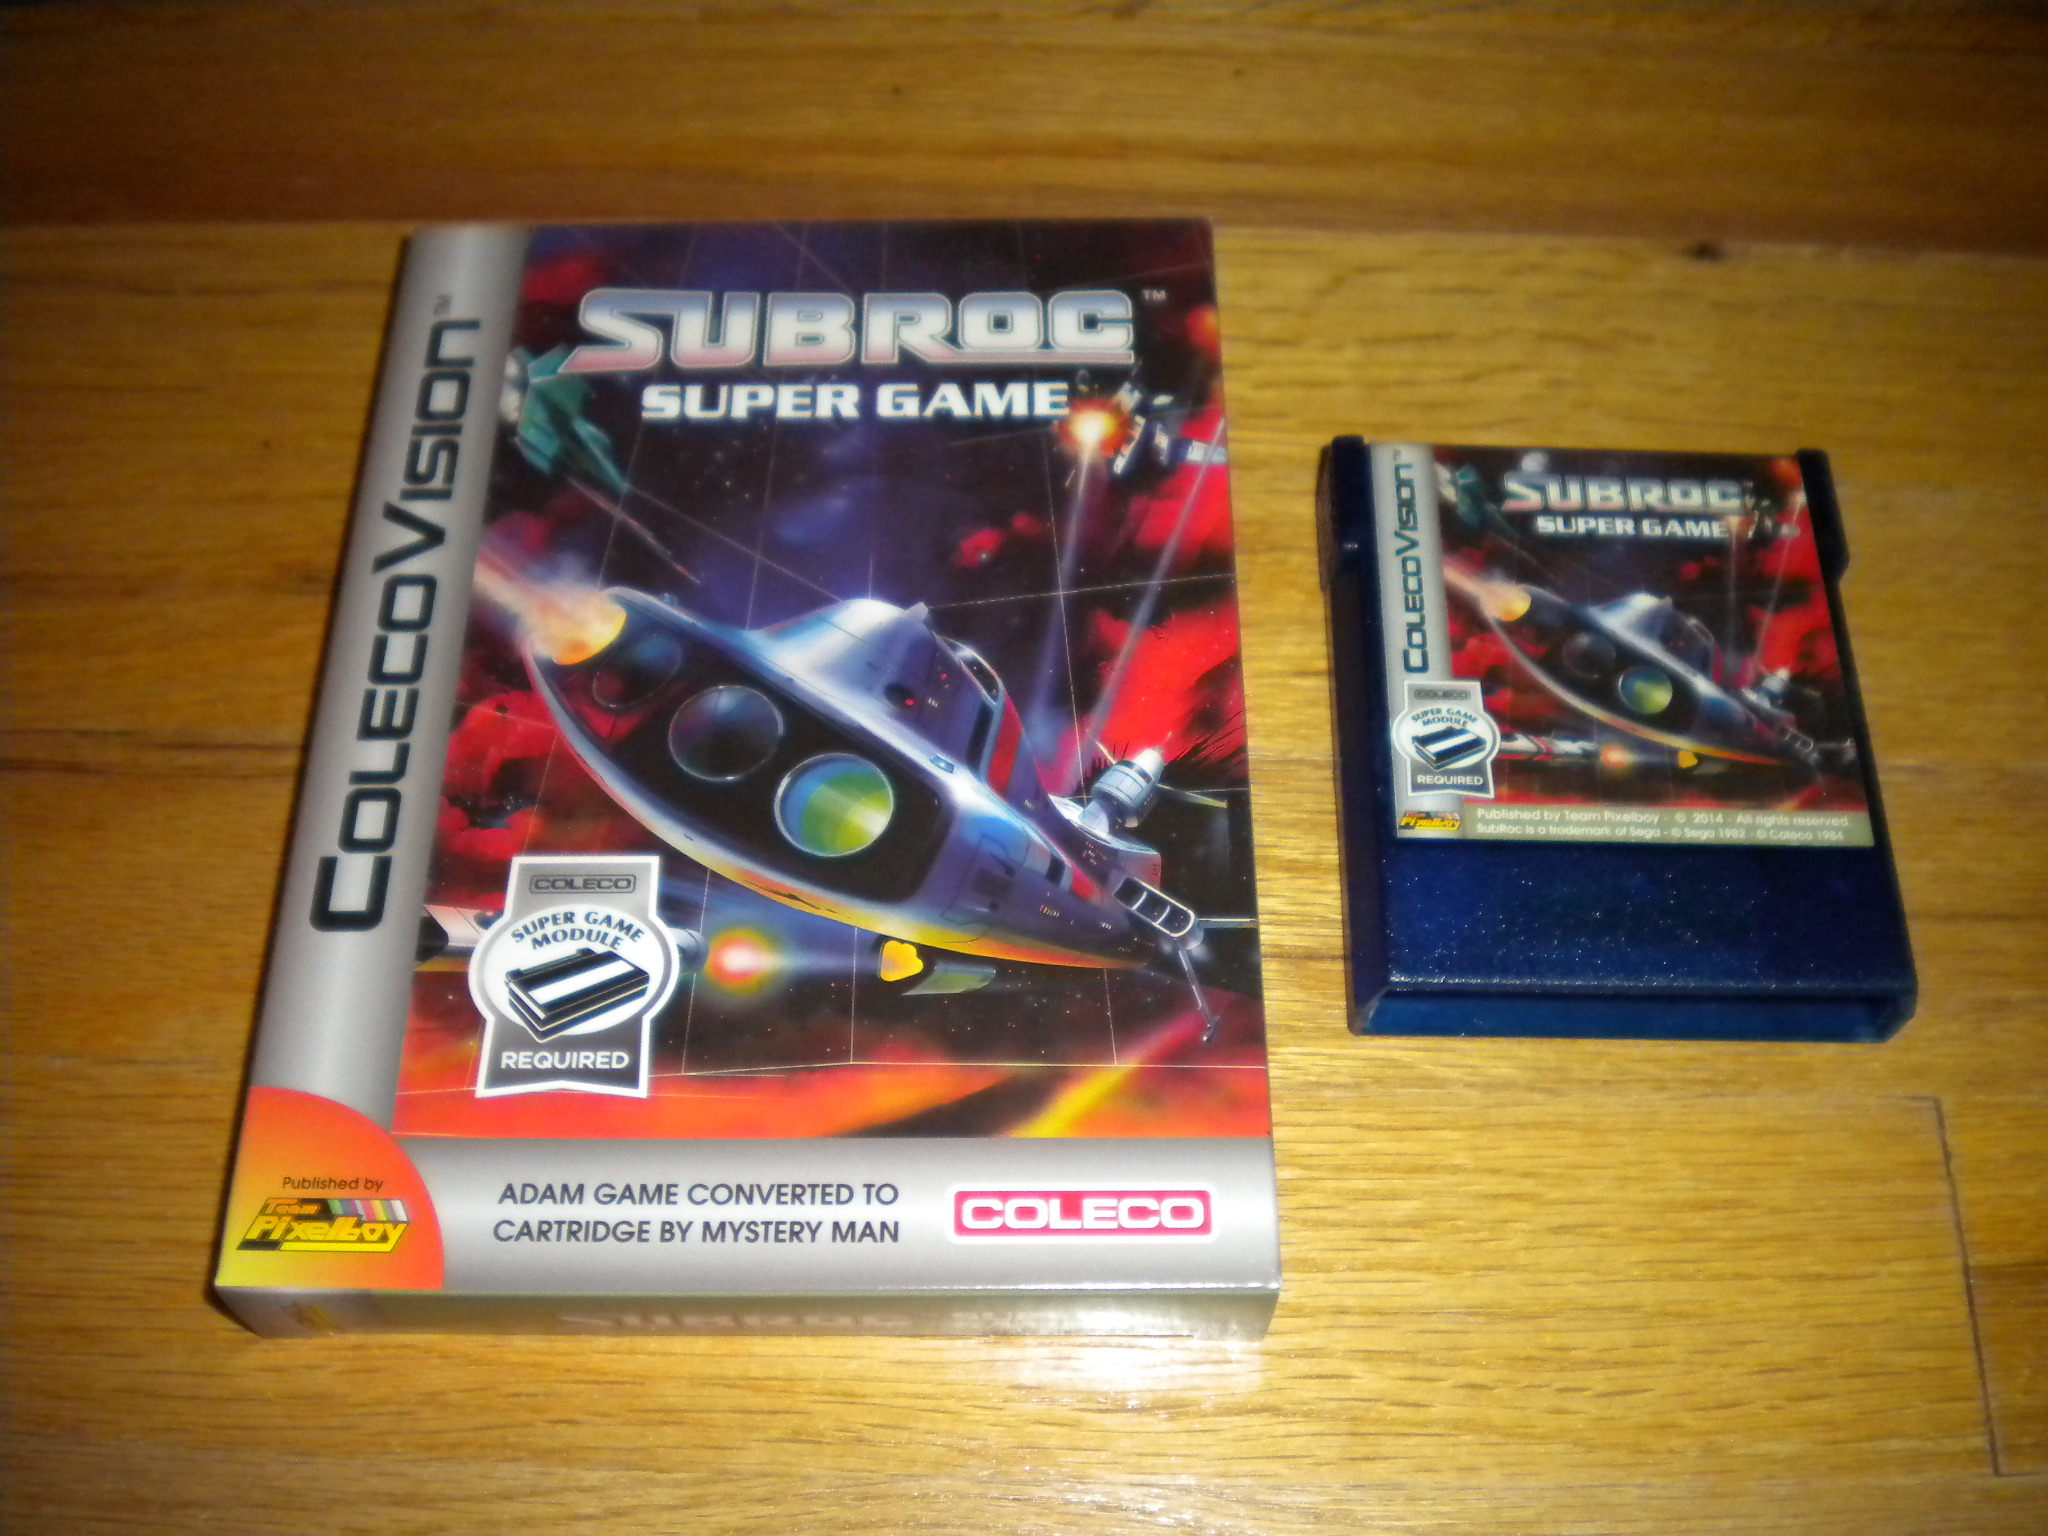 SubRoc Super Game: Skill 1 3,600 points